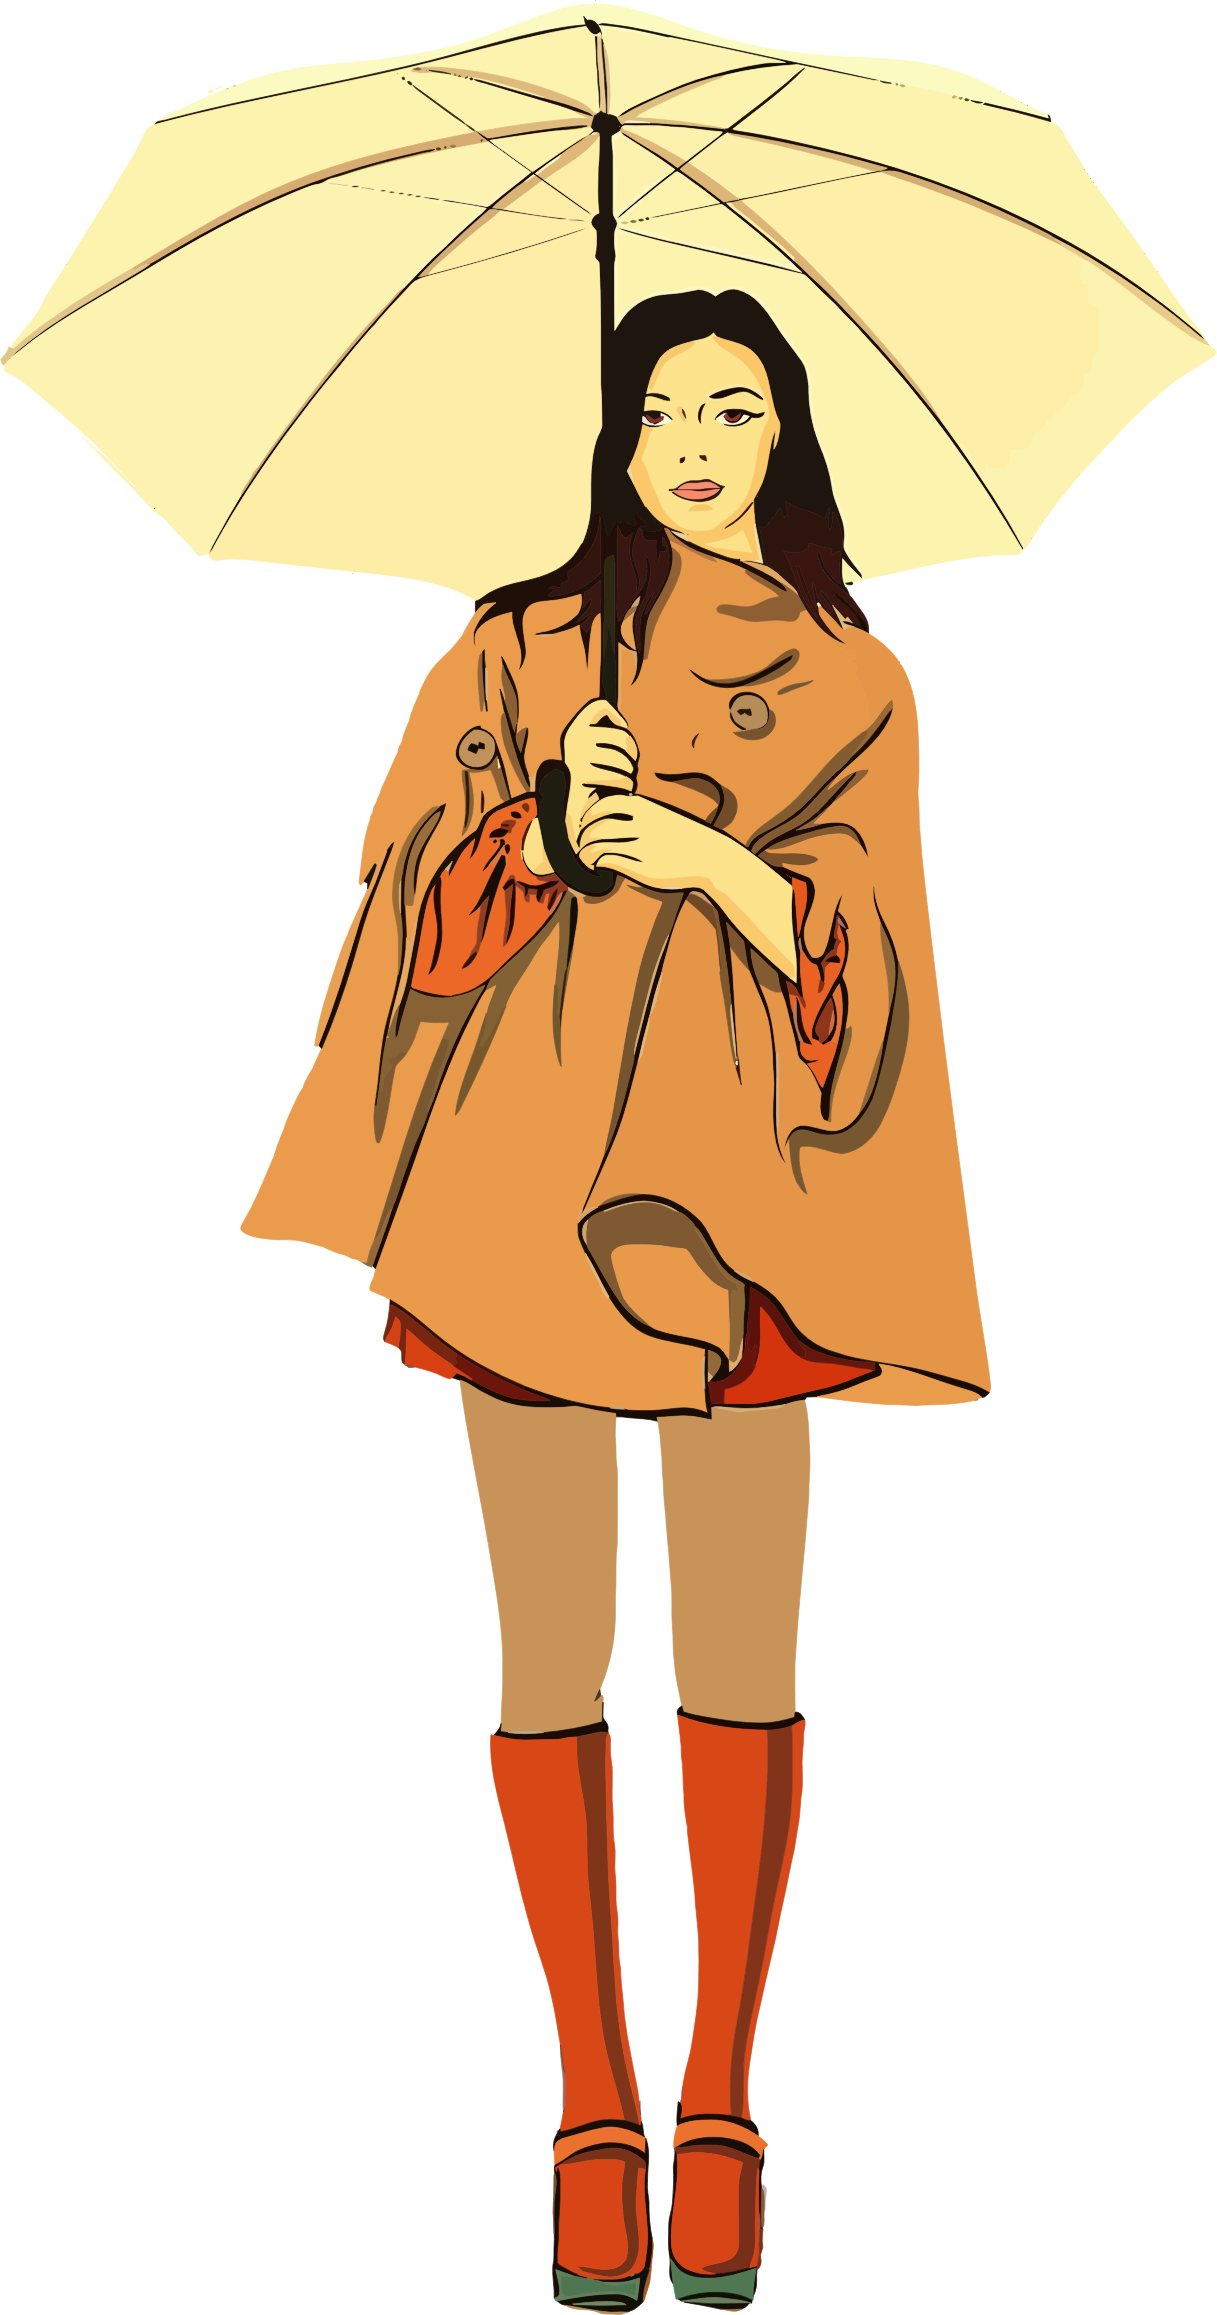 Person With Umbrella Clipart.